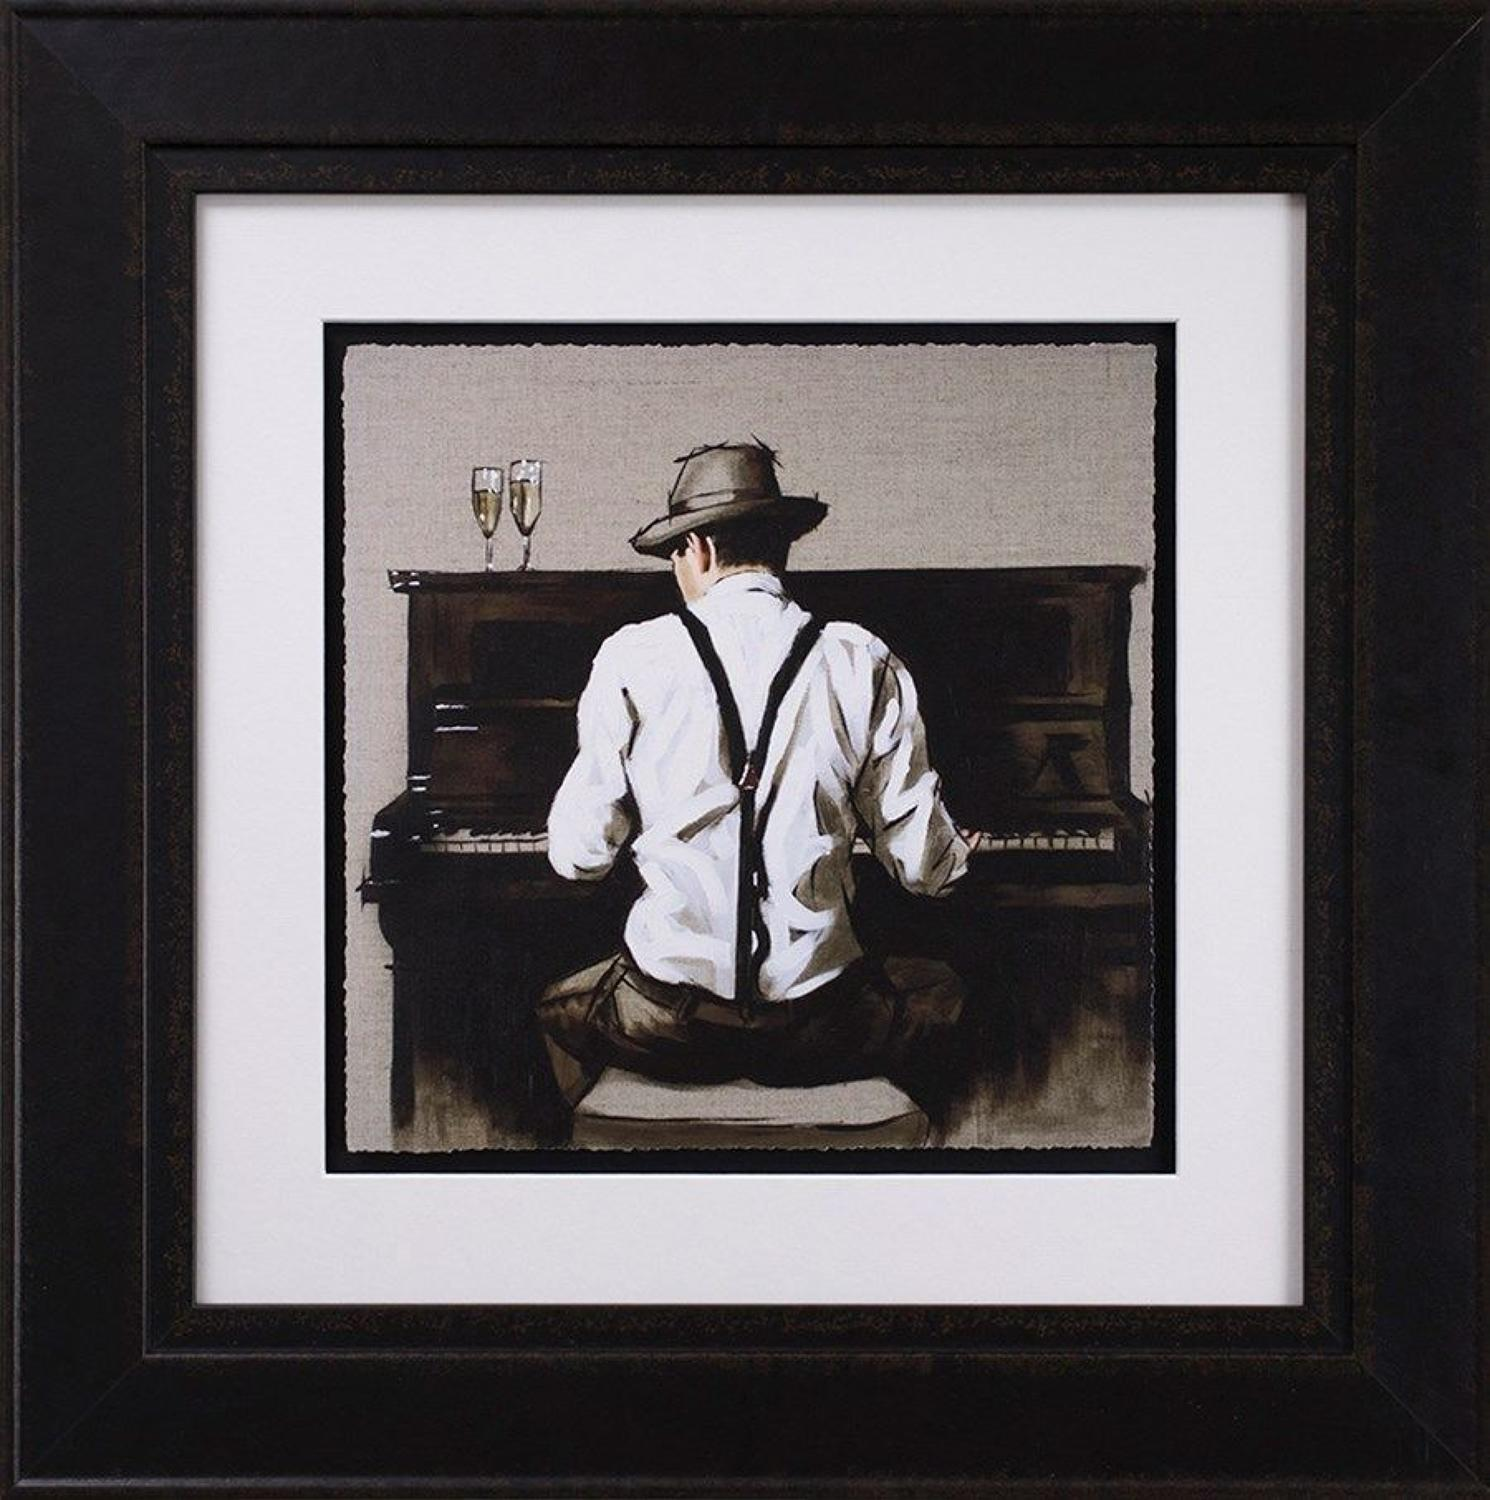 Piano Man Framed Art Print by Richard Blunt